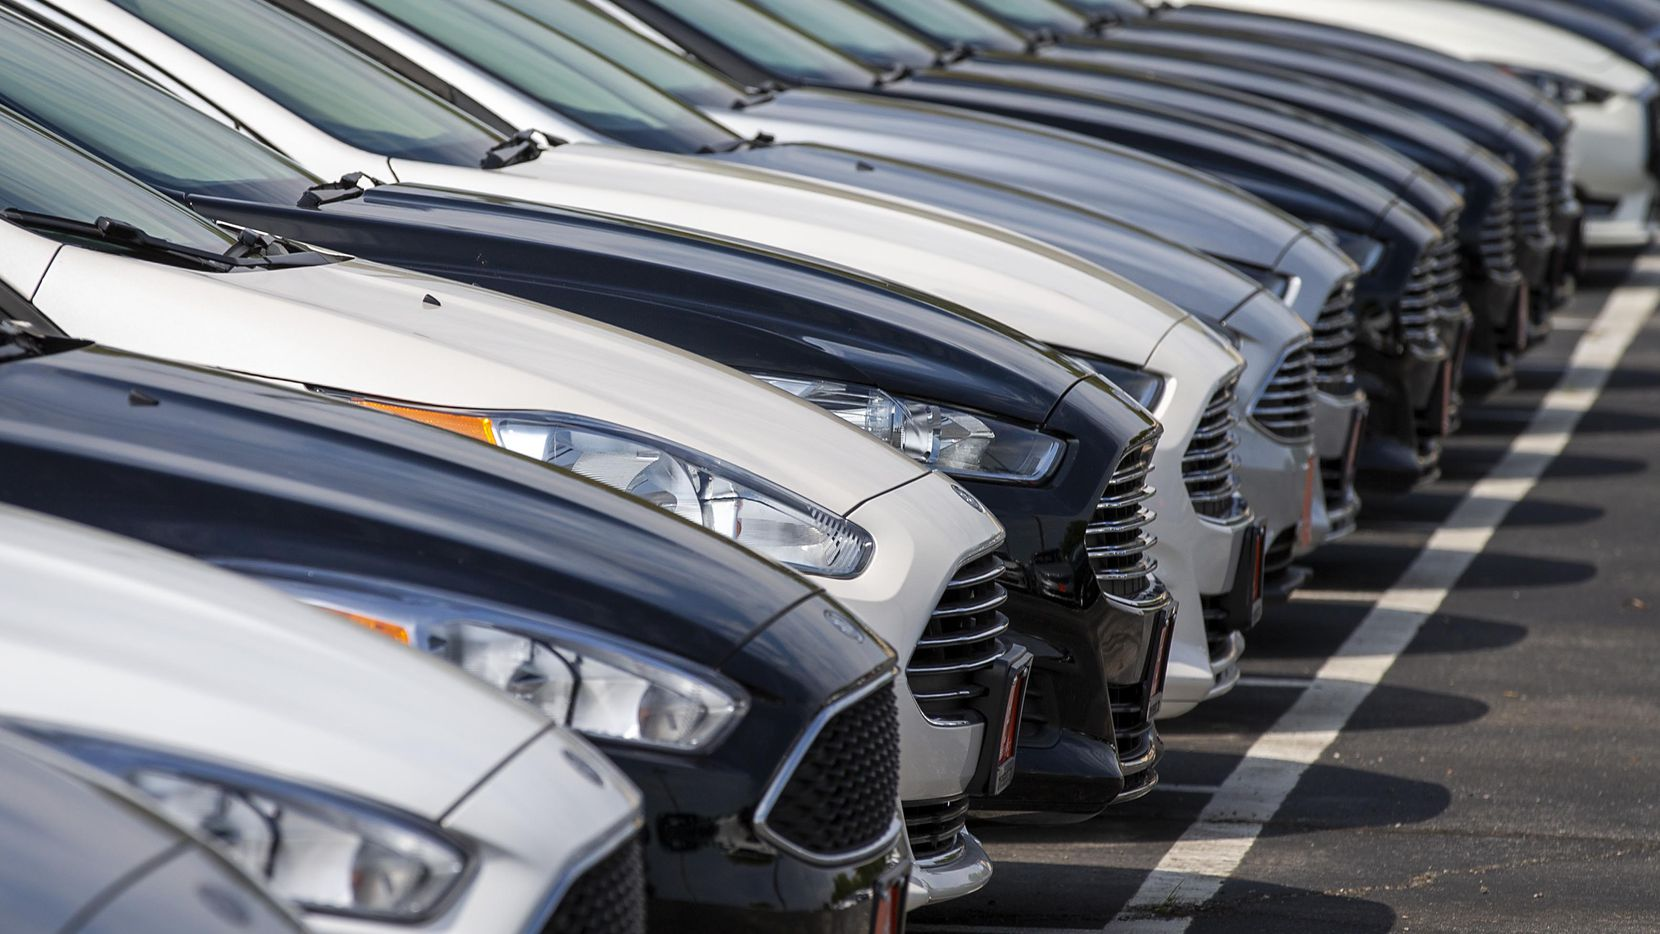 The average car loan in Texas topped $23,000 last year, and a growing share of borrowers are at least 90 days late on payments, according to a recent study by the Dallas Fed.